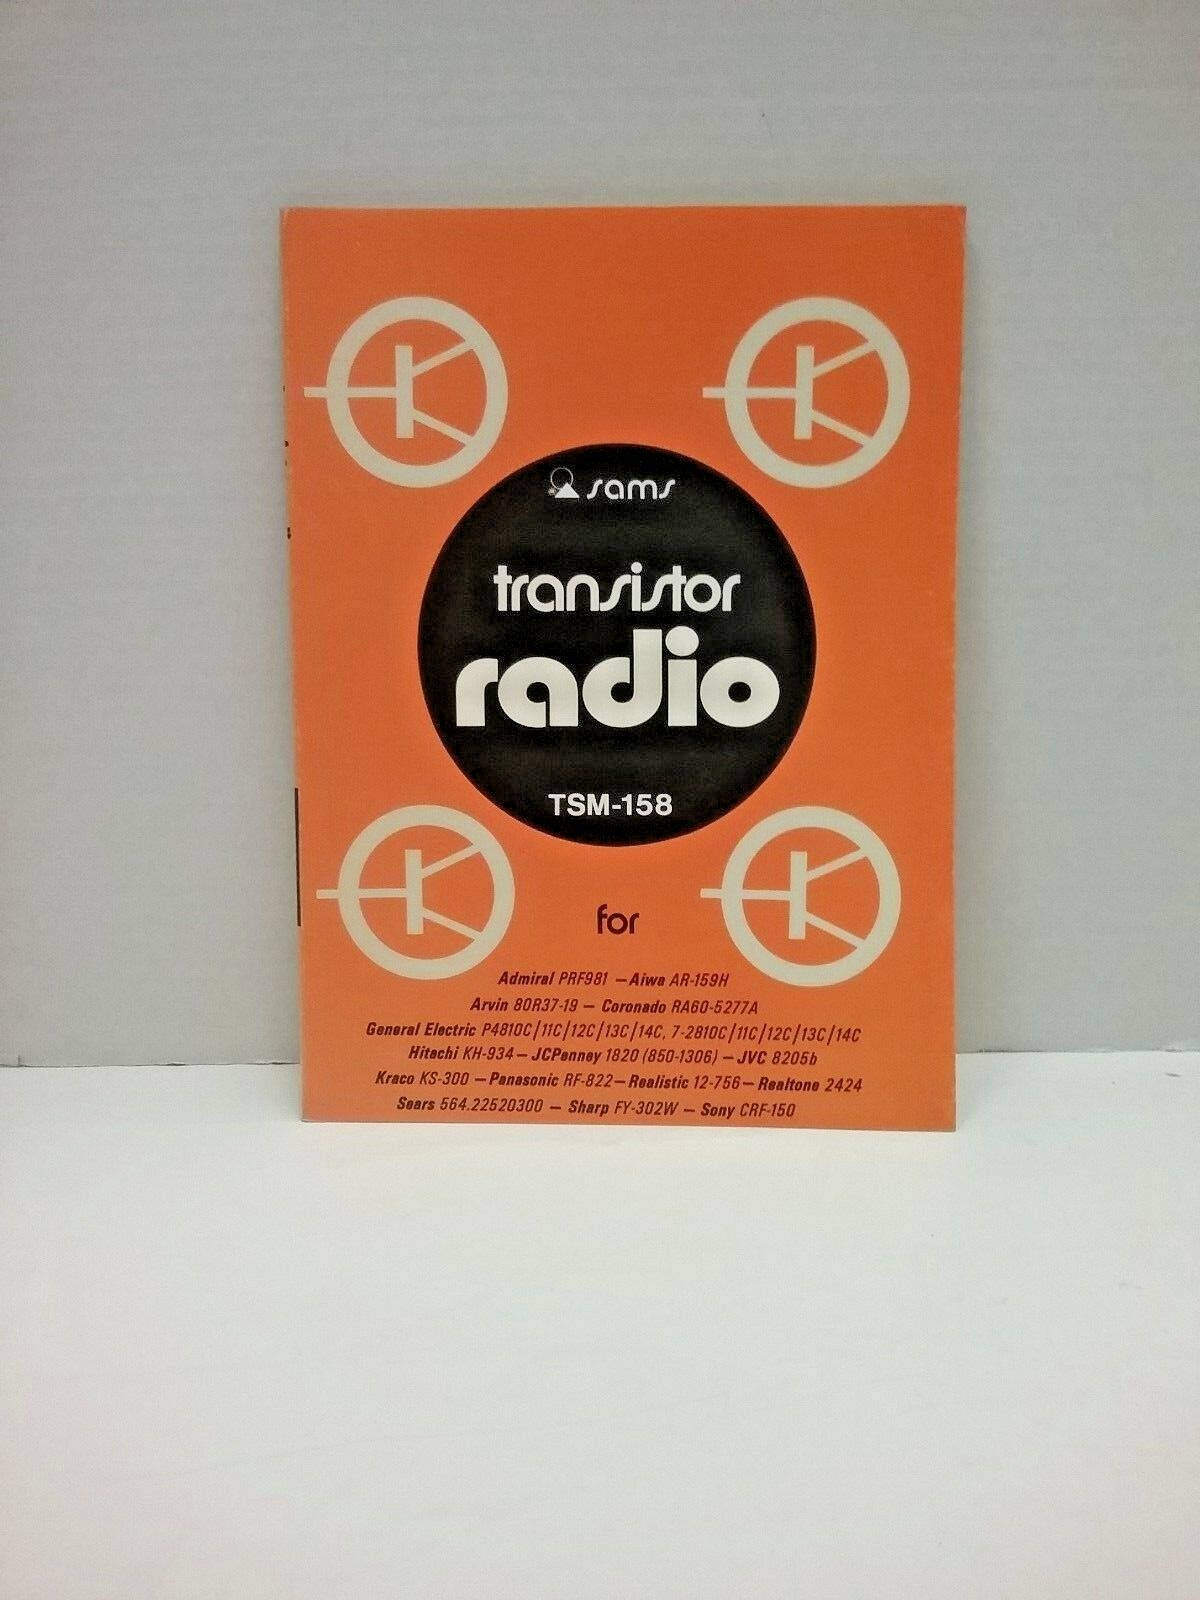 One Of Sams Transistor Radio Tsm Covered Brands And Models In 1 2 See More